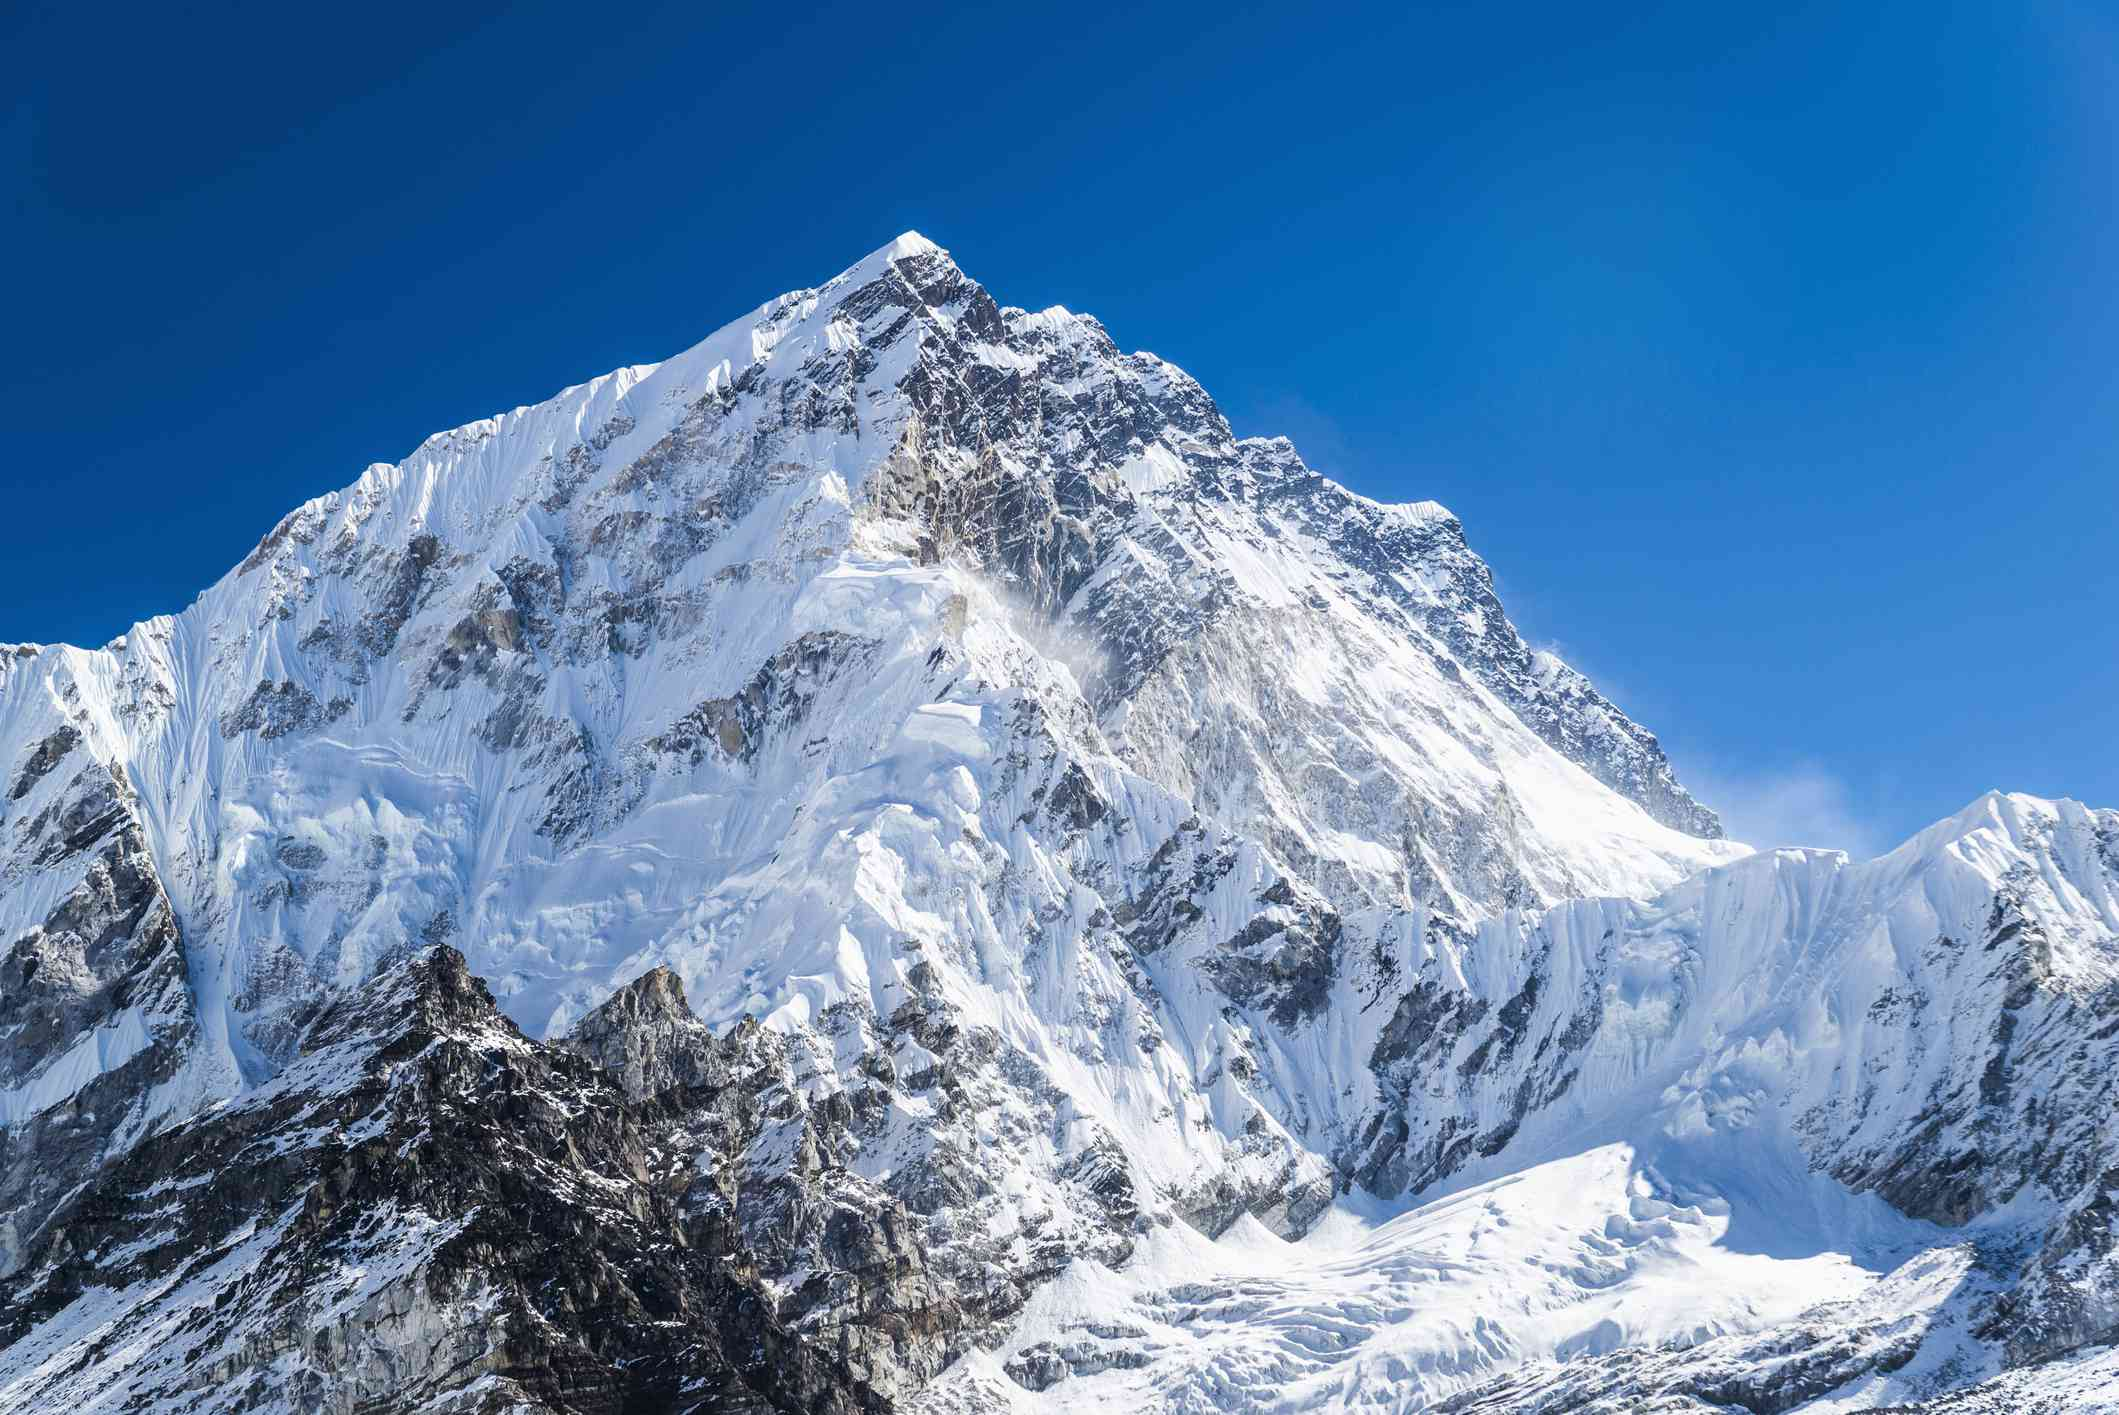 Mt. Everest. world's tallest mountain, covered in snow